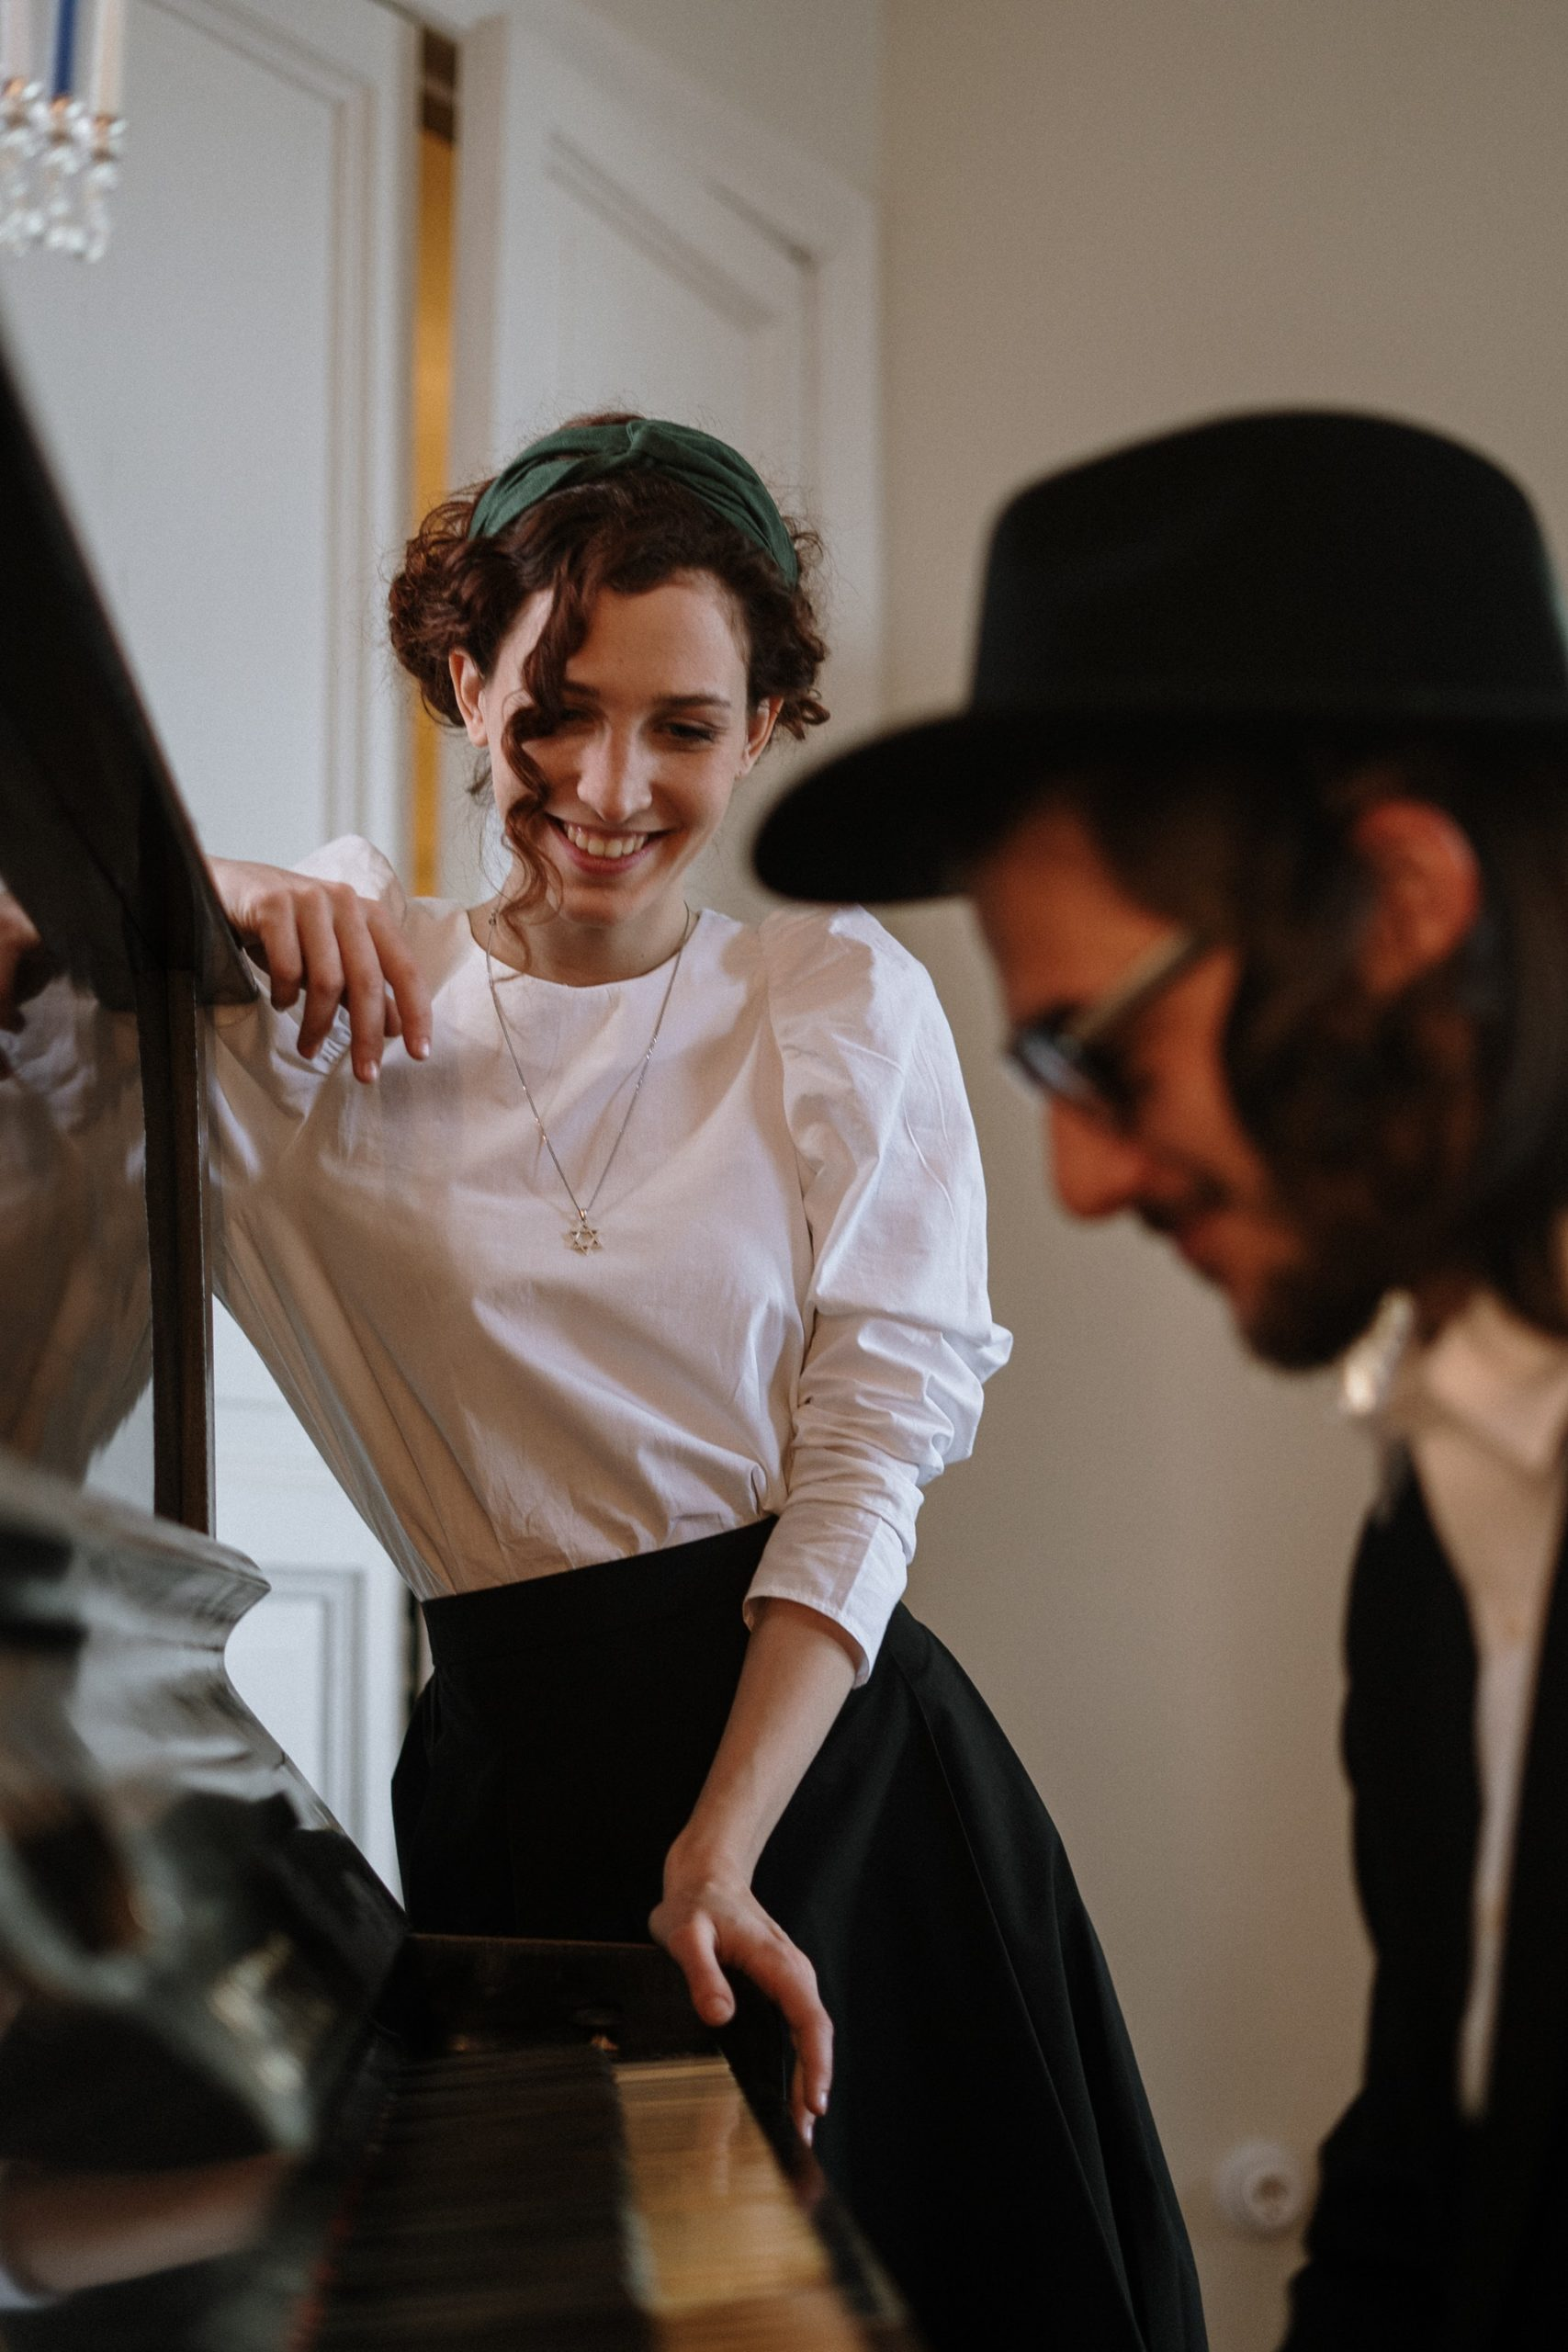 a woman in white shirt dating a Jewish man who is playing a piano